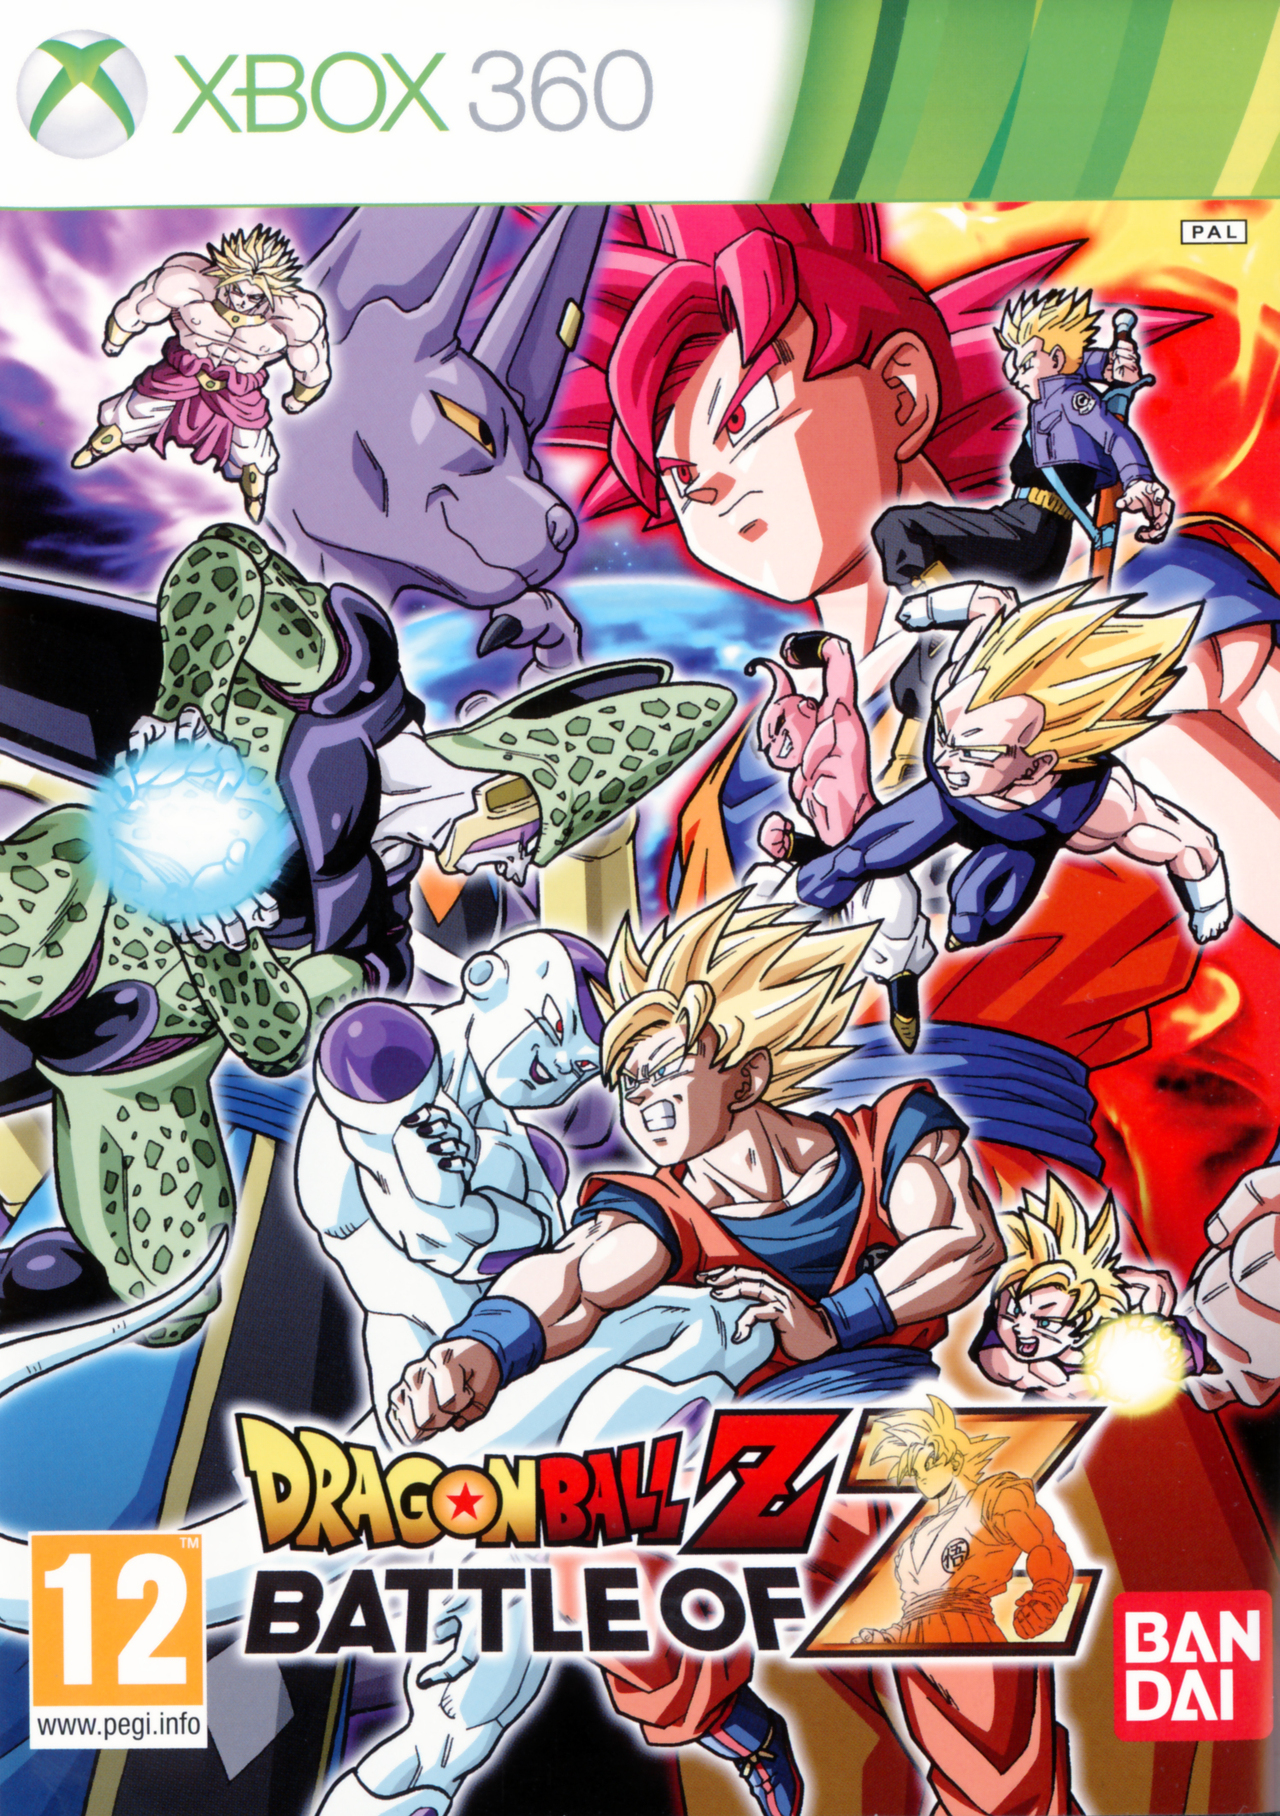 Dragon ball z battle of z sur xbox 360 - Jeux info dragon ball z ...